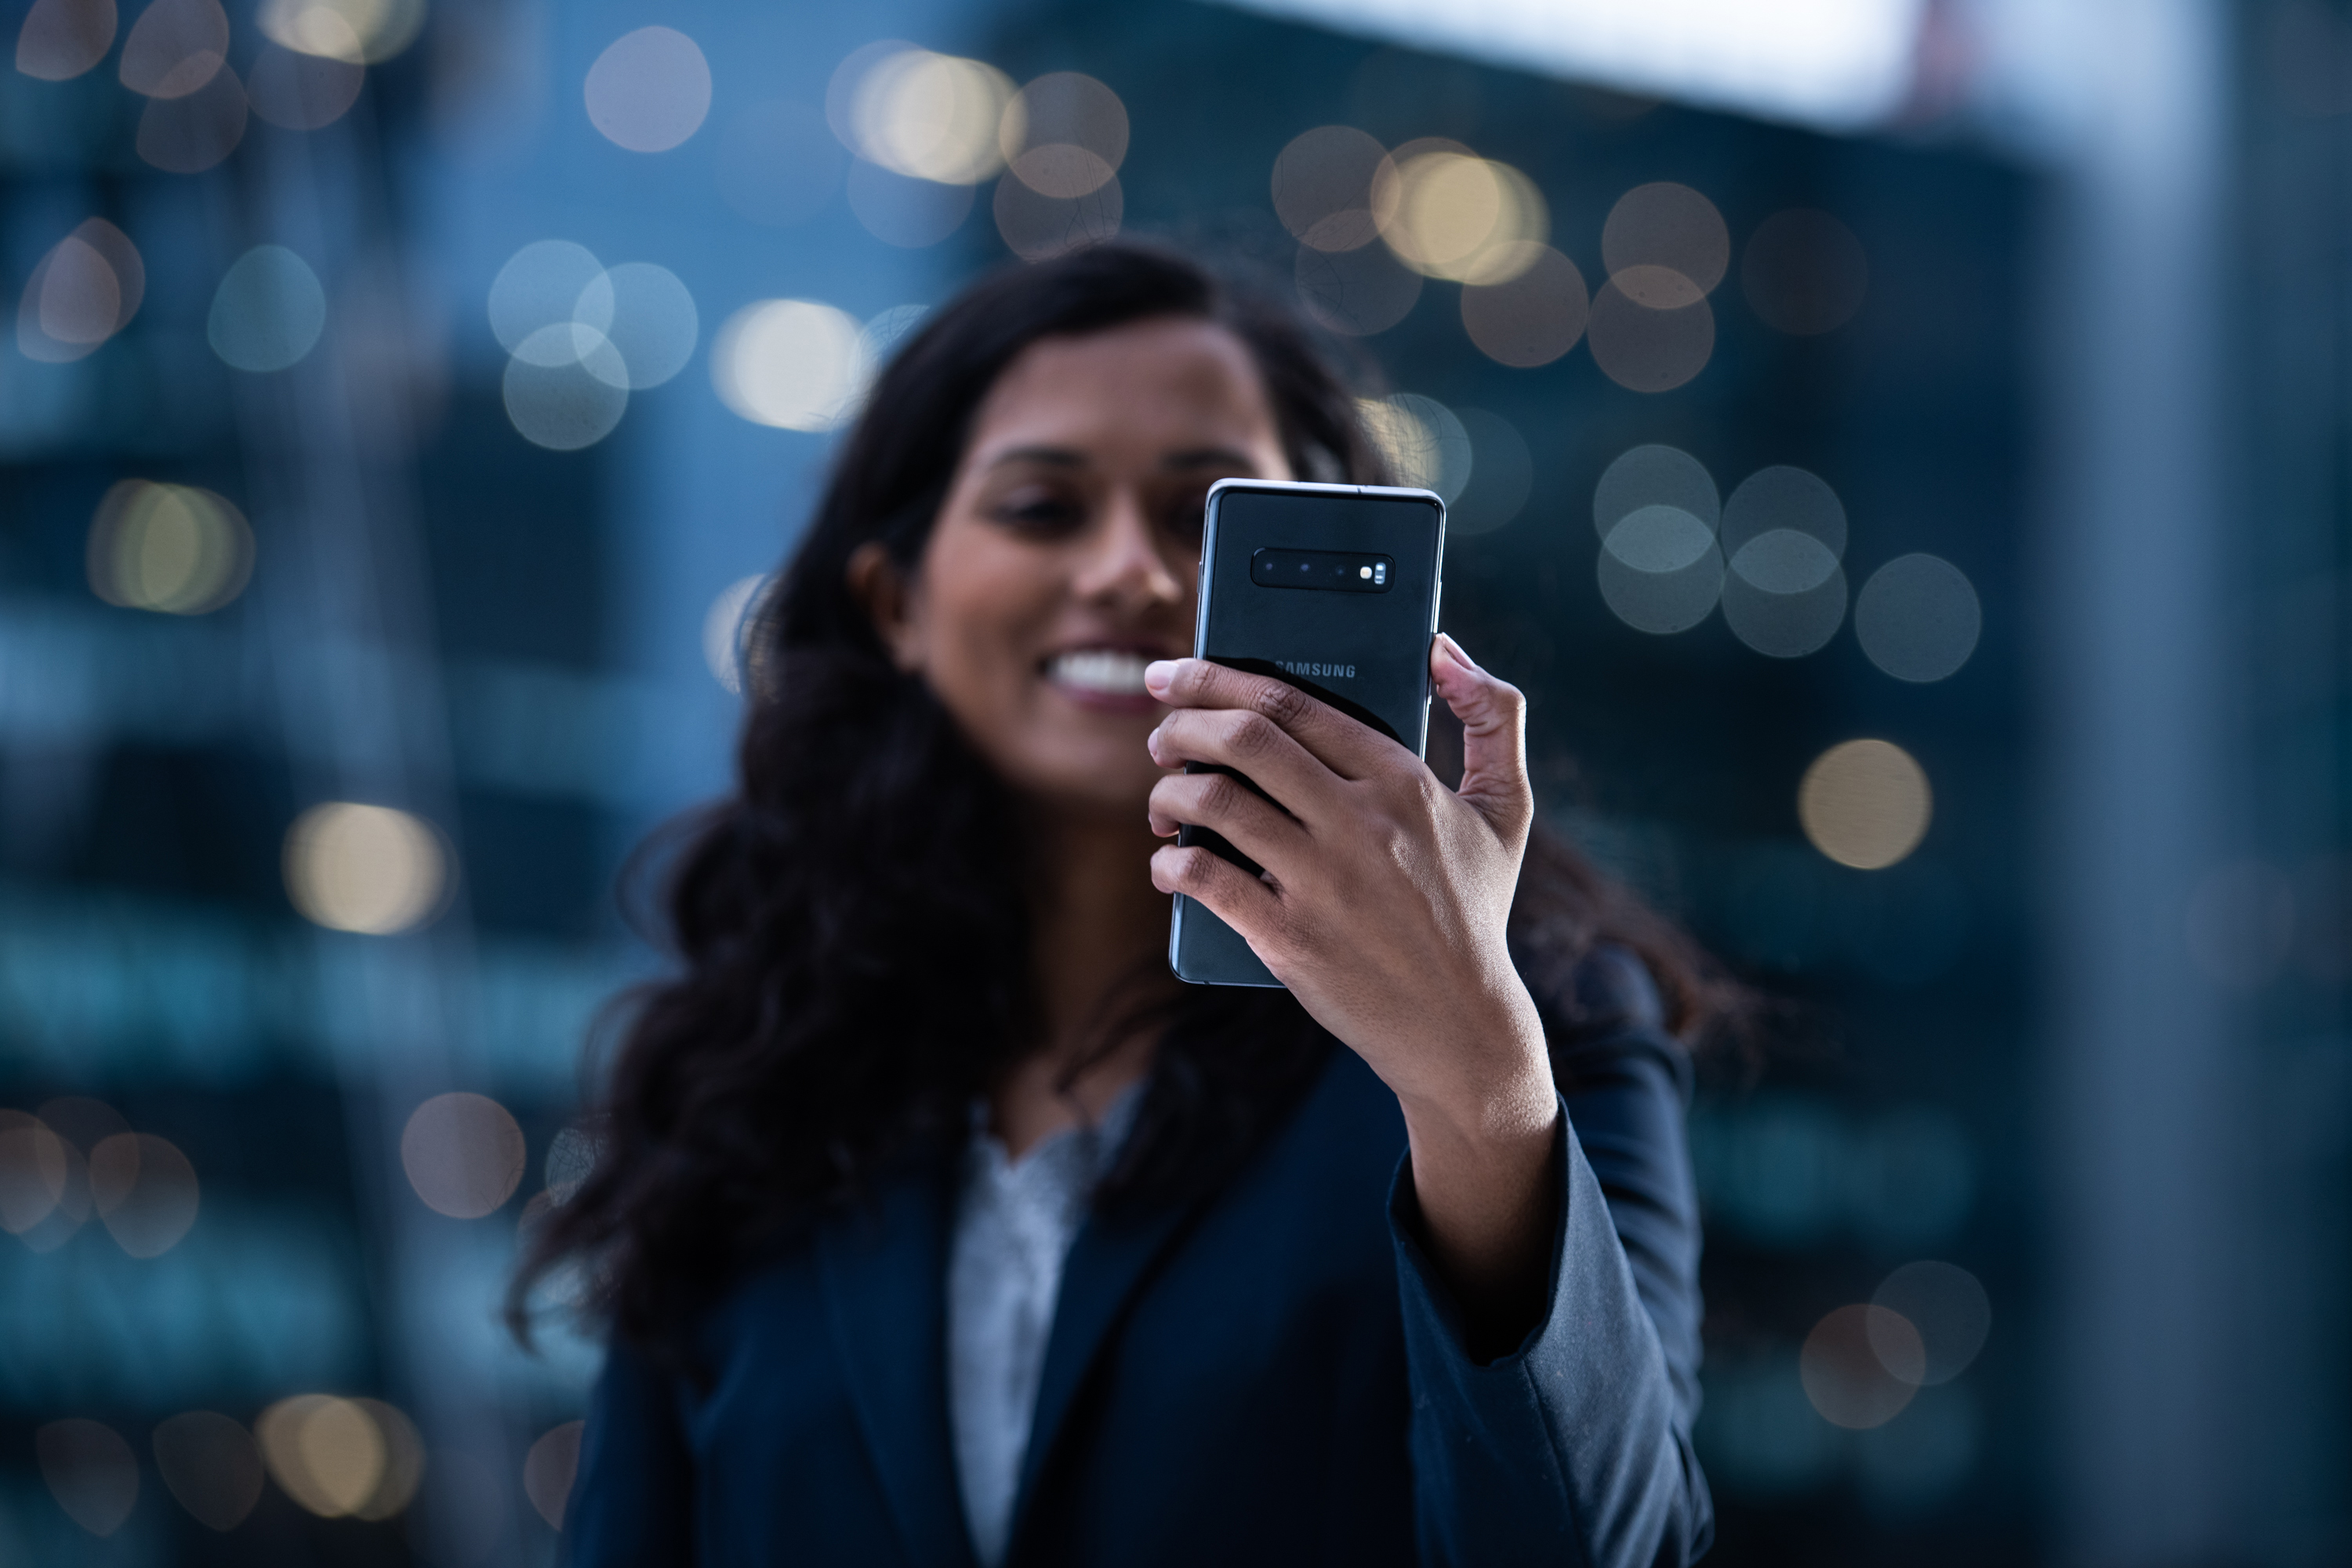 Woman holding Samsung Galaxy smartphone